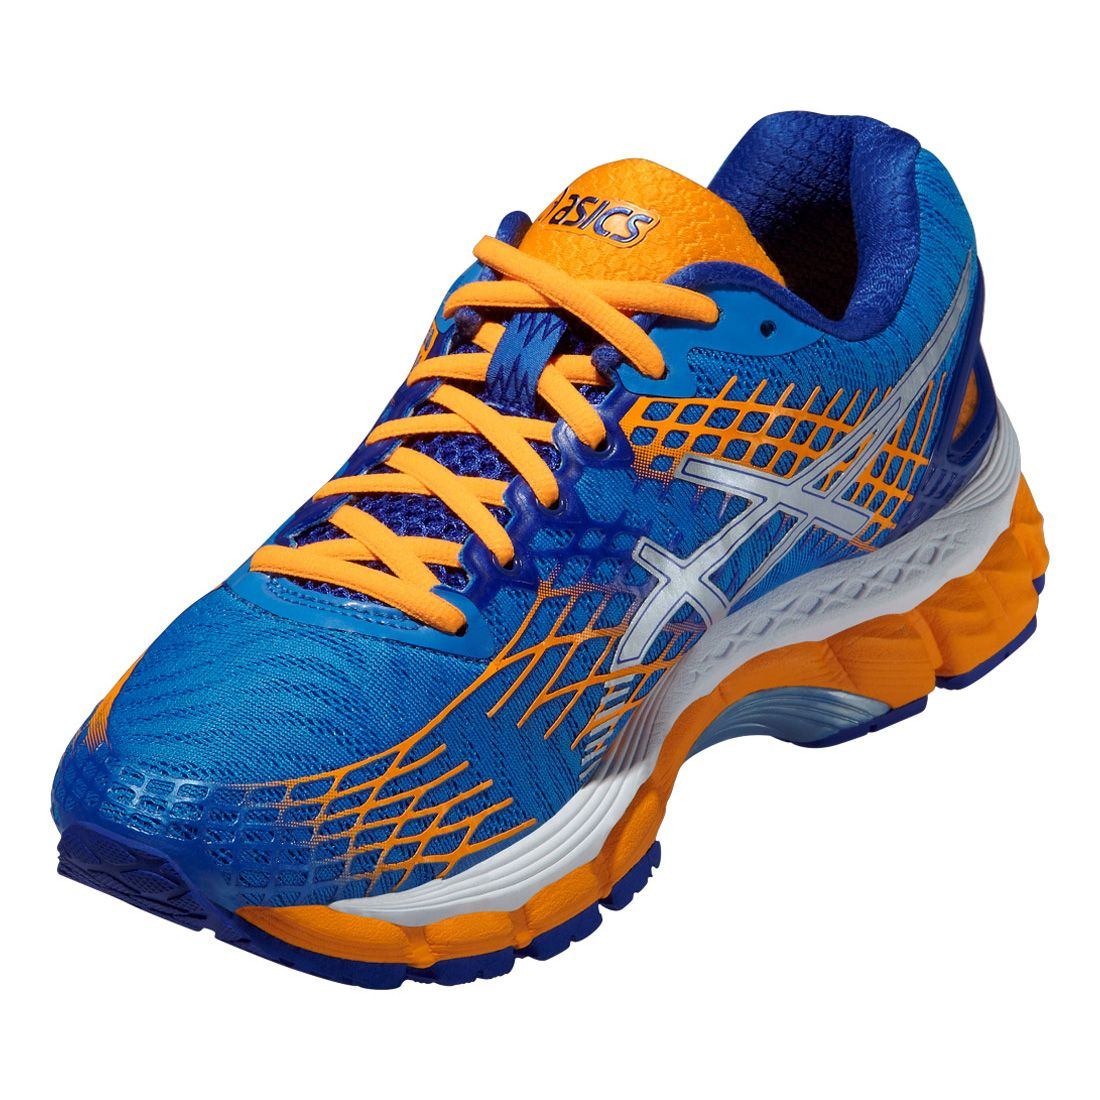 asics gel nimbus 17 ladies running shoes. Black Bedroom Furniture Sets. Home Design Ideas